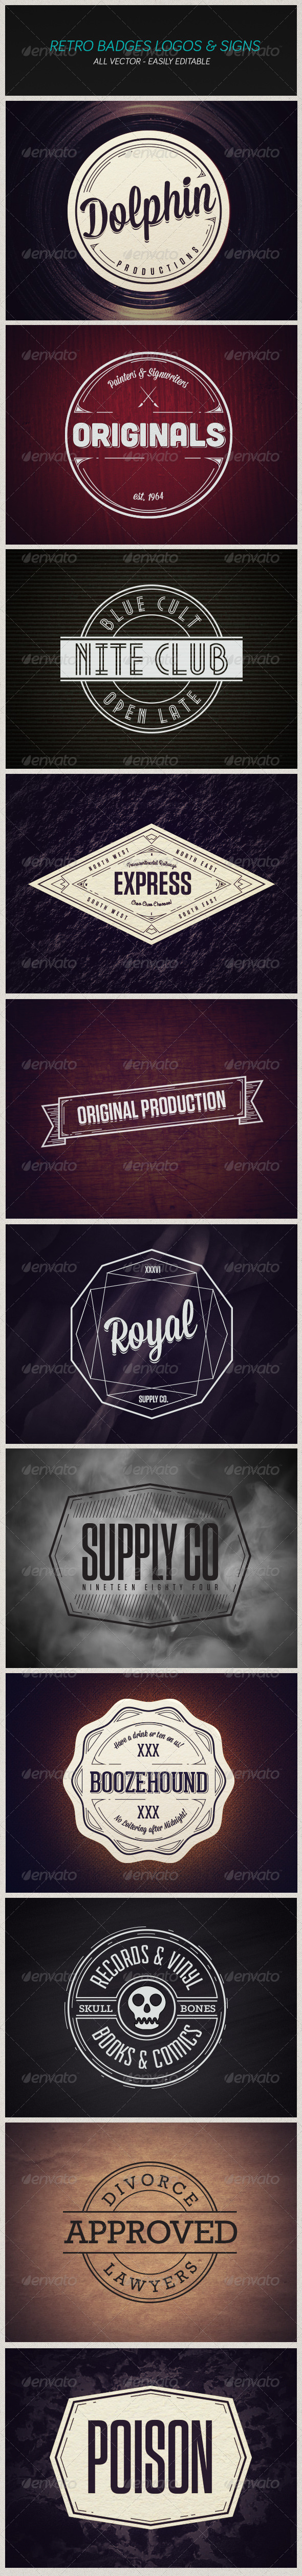 GraphicRiver Modern Retro Badges Vintage Logos and Signs 5178631